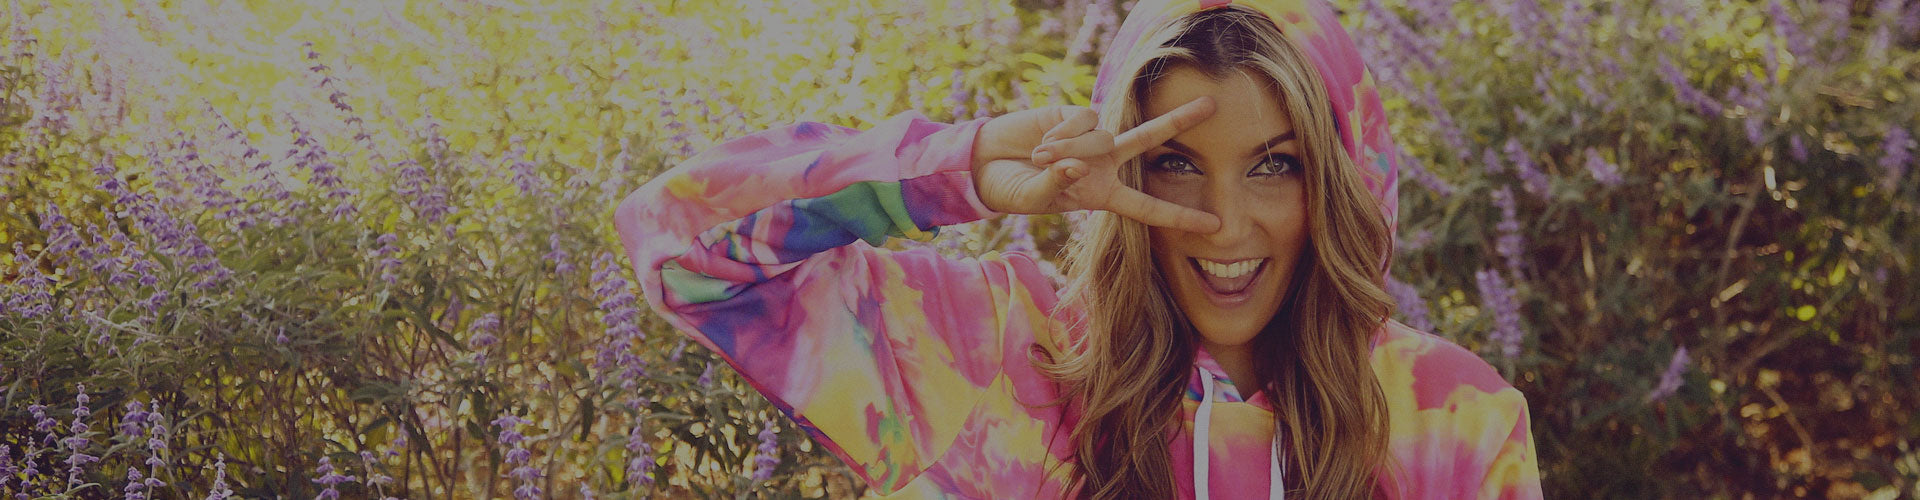 rave hoodies for women